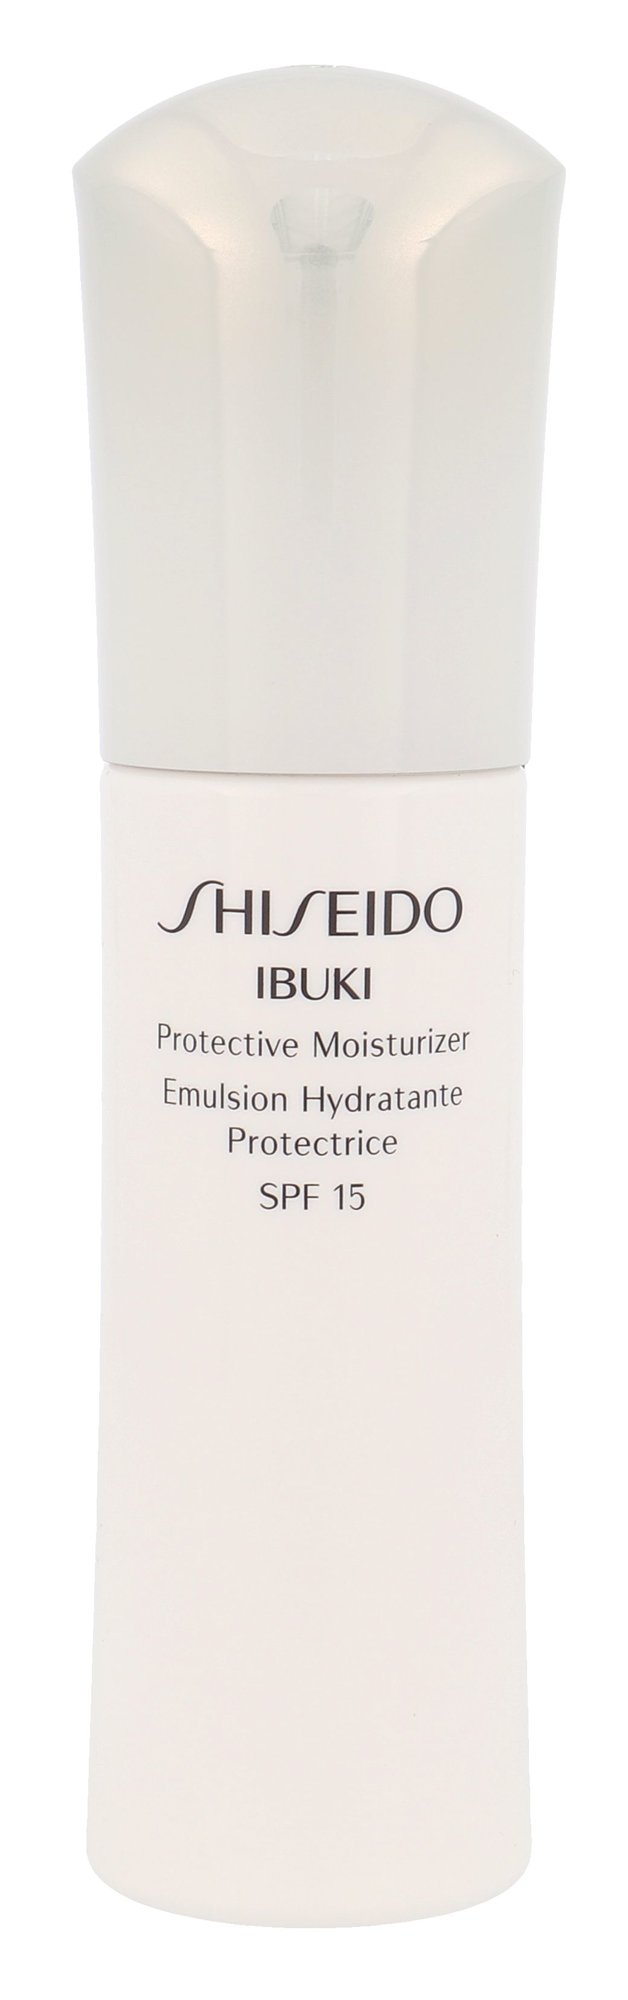 Shiseido Ibuki Day Cream 75ml